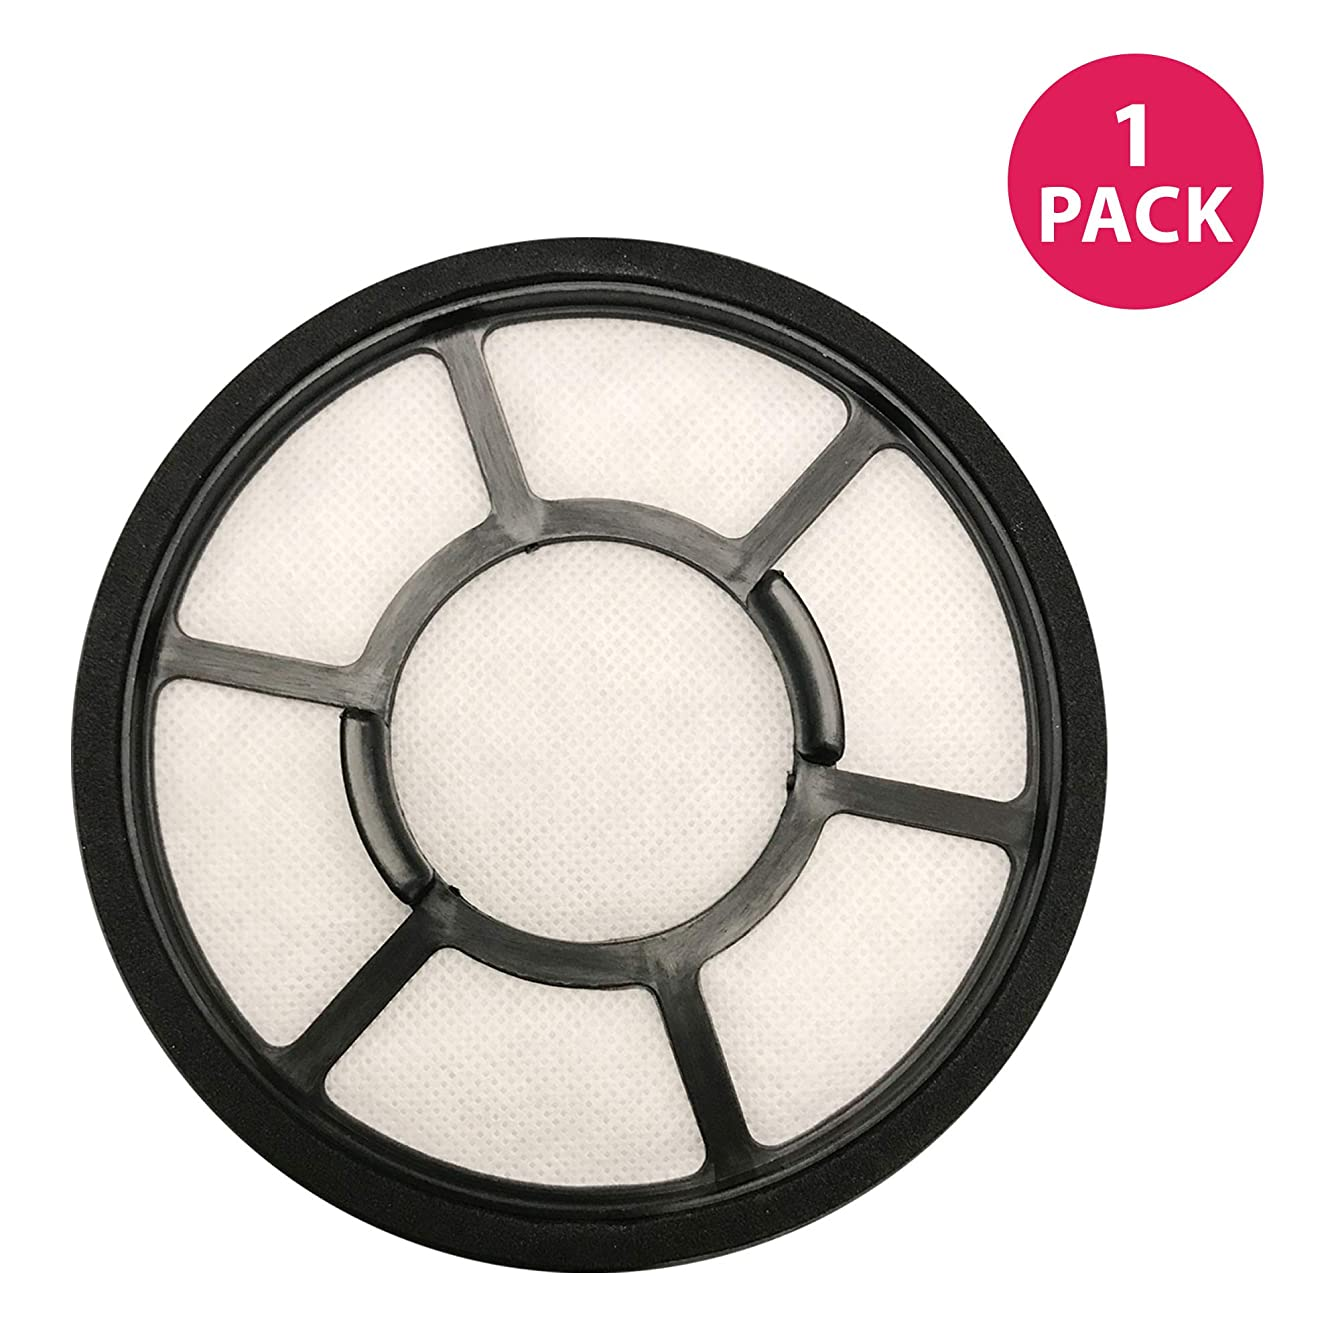 Think Crucial Replacement Air Filters Compatible with Black & Decker 5.5 x 5.5 x 1 Circular Pre Filter Part, Fits Vacuum Cleaner Model Parts BDASV102 Airswivel Vacuum Cleaners (1 Pack)